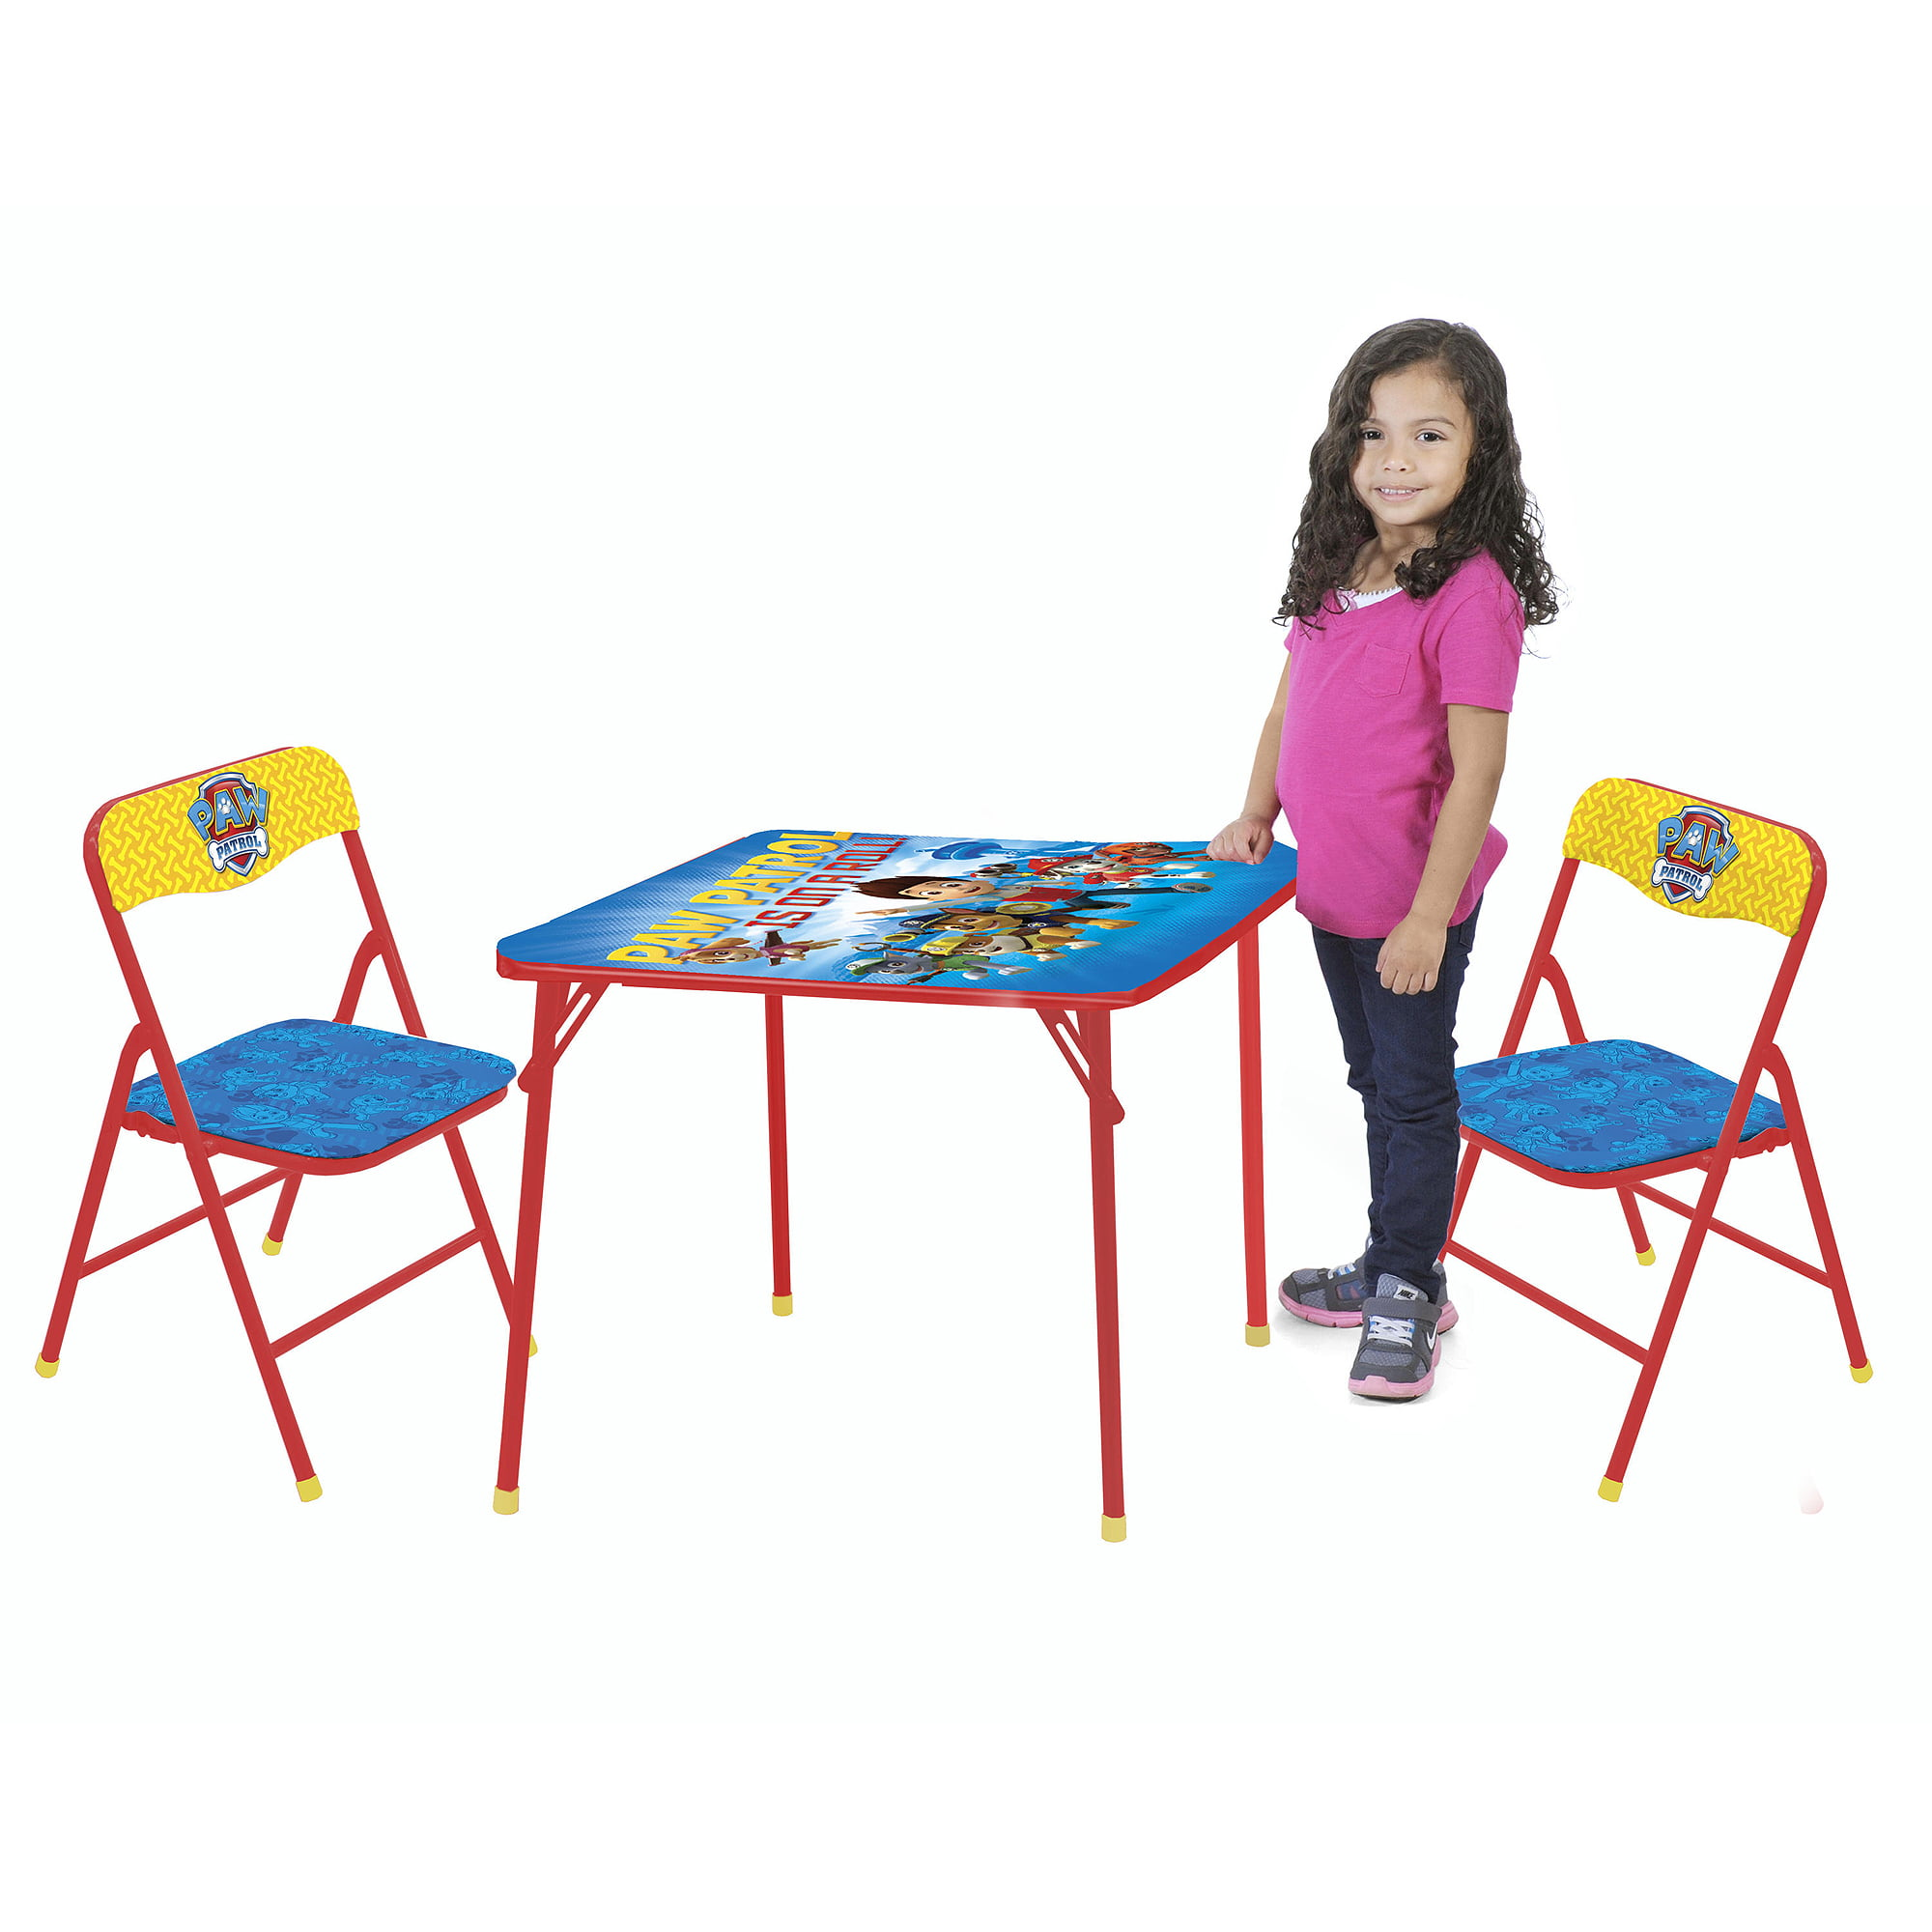 Kids Table and Chairs Set Espresso Walmart